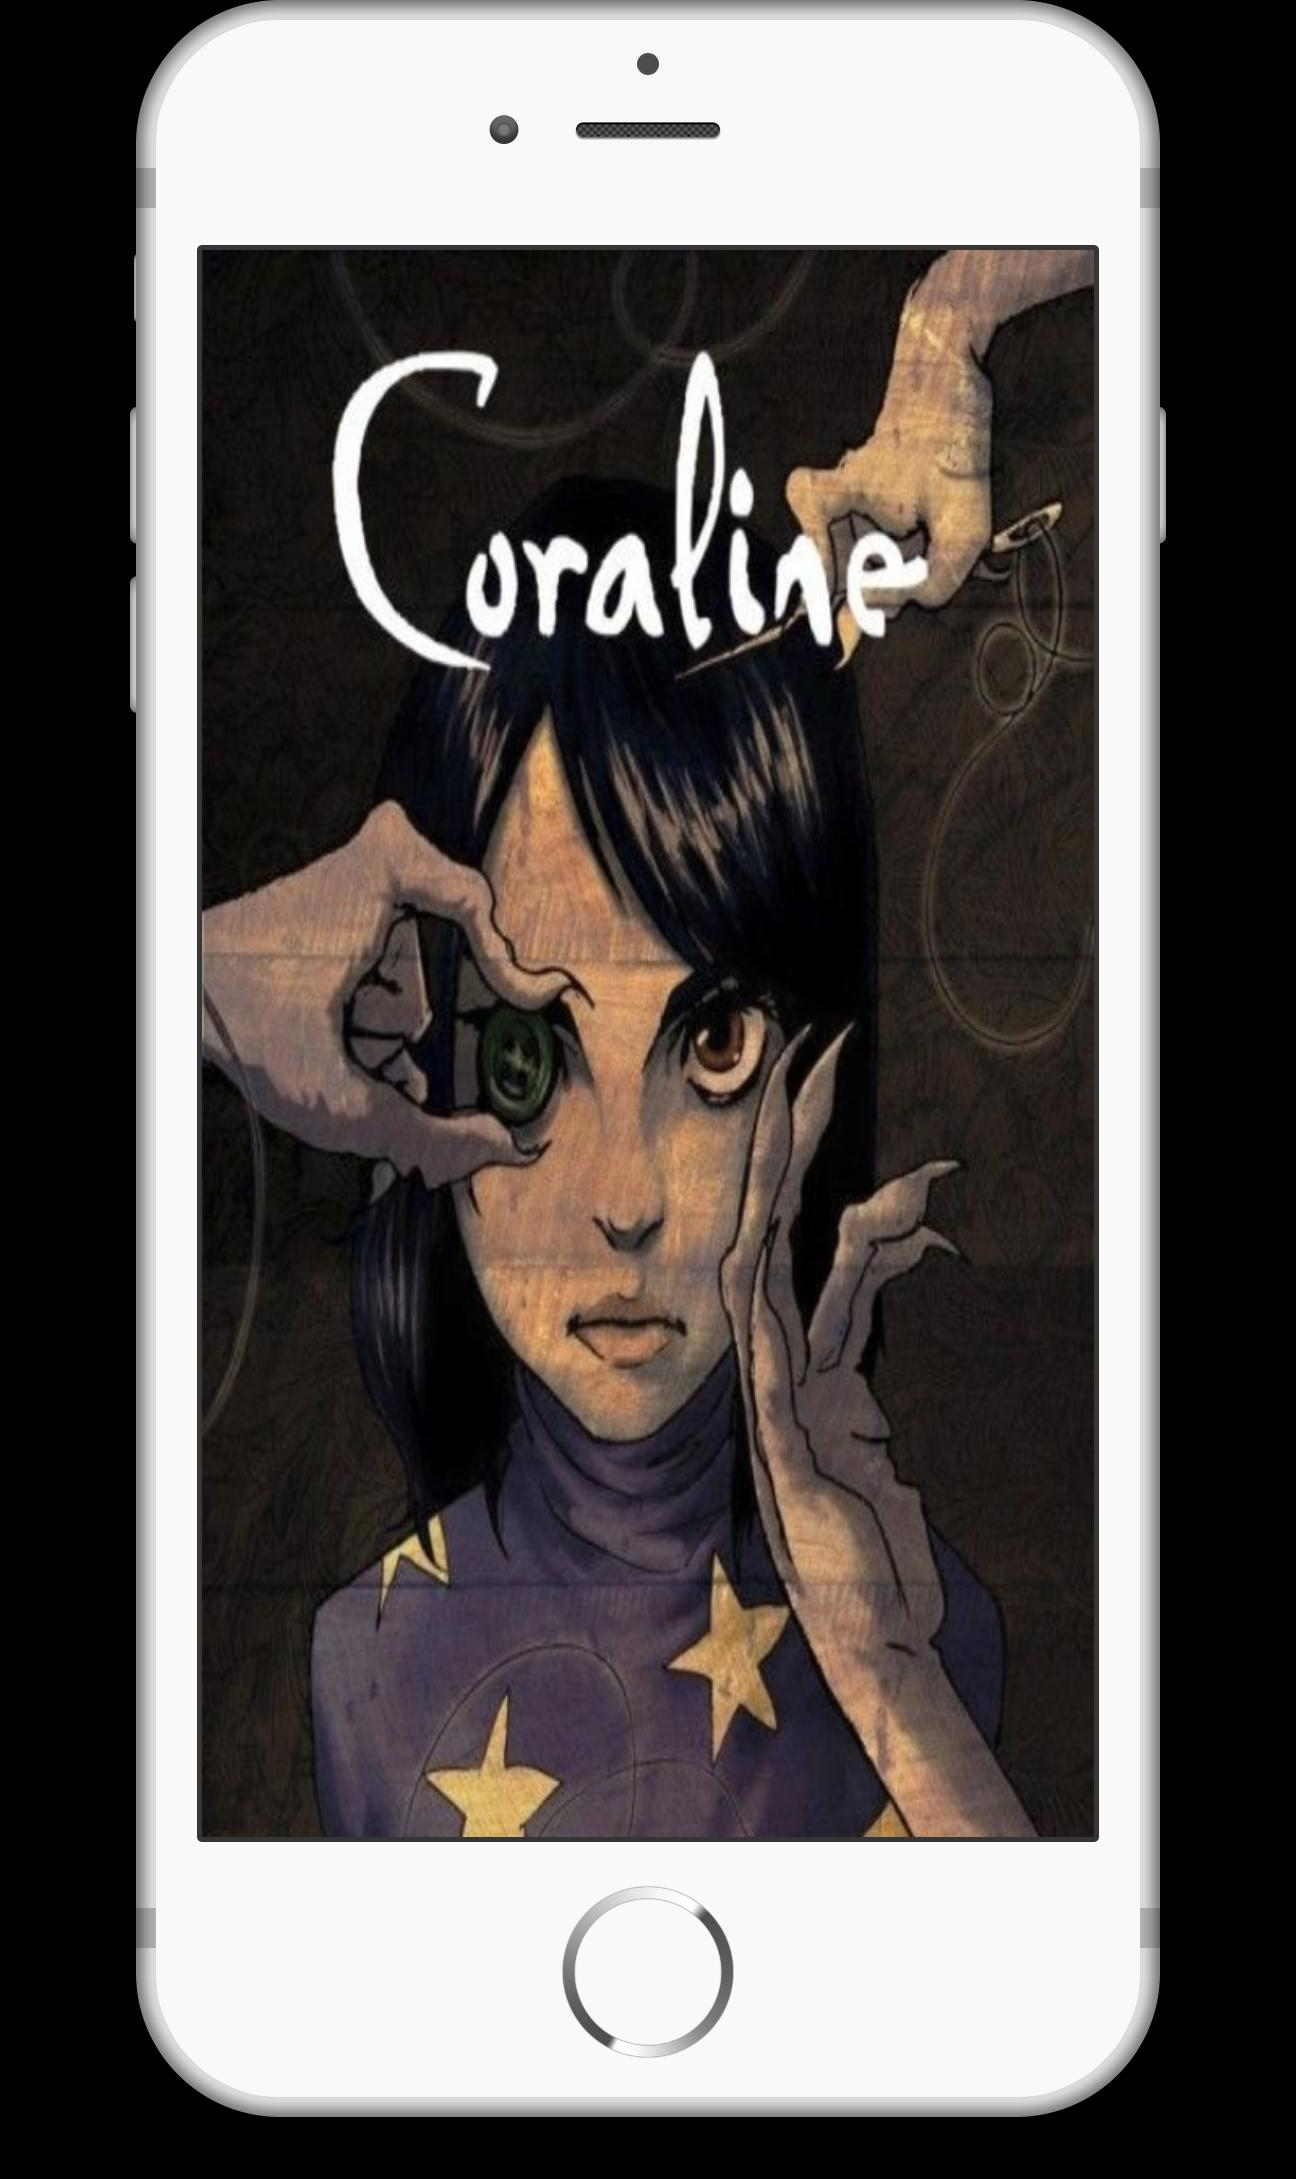 Coraline Wallpapers Hd For Android Apk Download